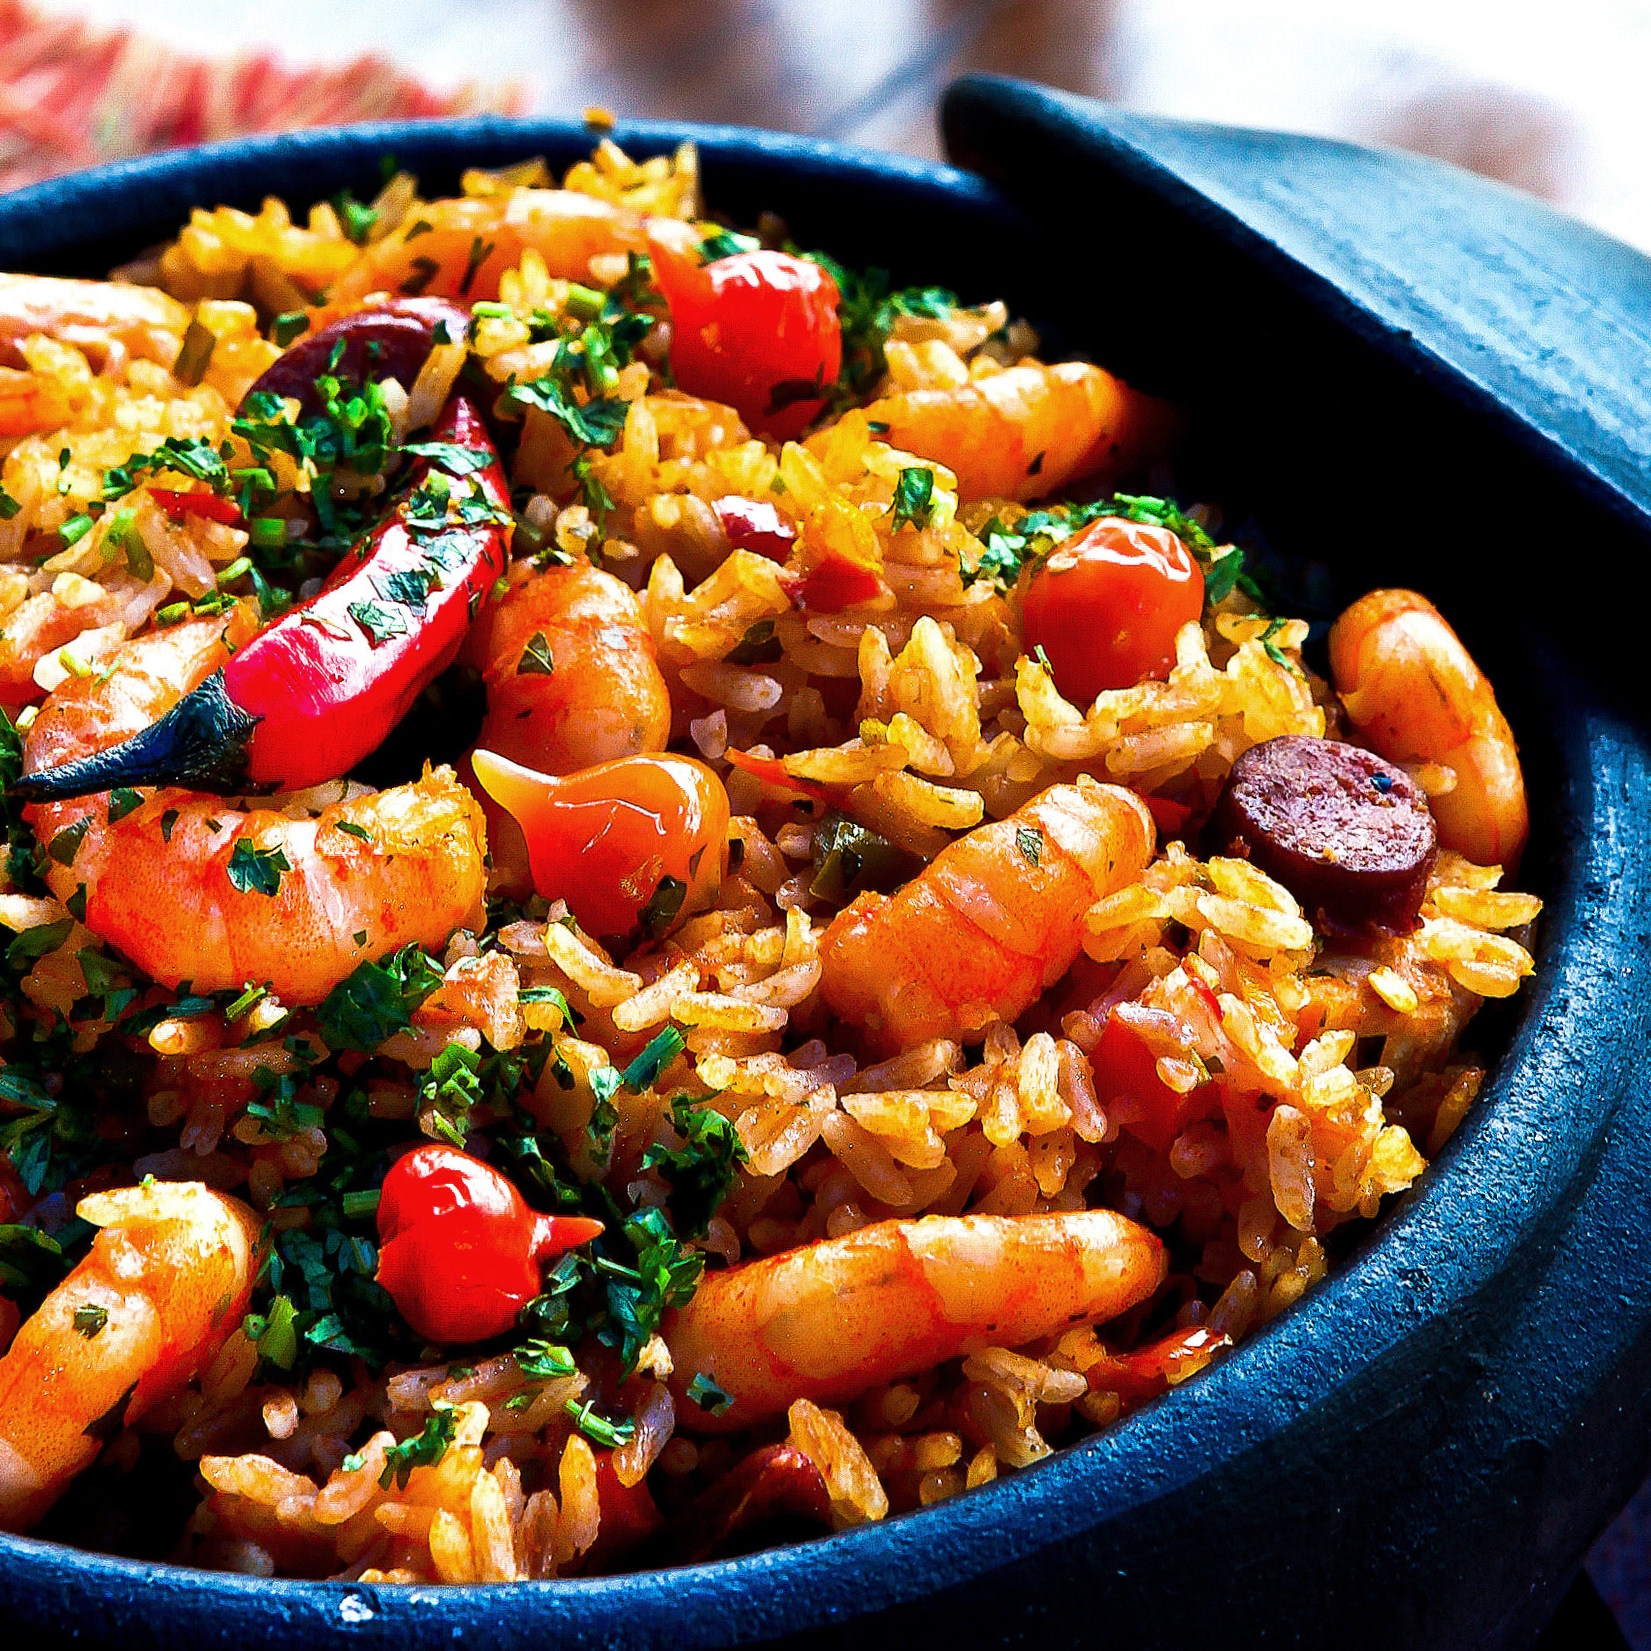 Traditional Food - The Spanish love their food and Tapas - small sharing dishes - is poplular, which isn't always great for food allergies. They cook with a lot of fresh ingredients, which is great for adapting menu ideas and nuts are not commonly used in traditonal dishes. You can also find many dairy free alternatives in the shops.